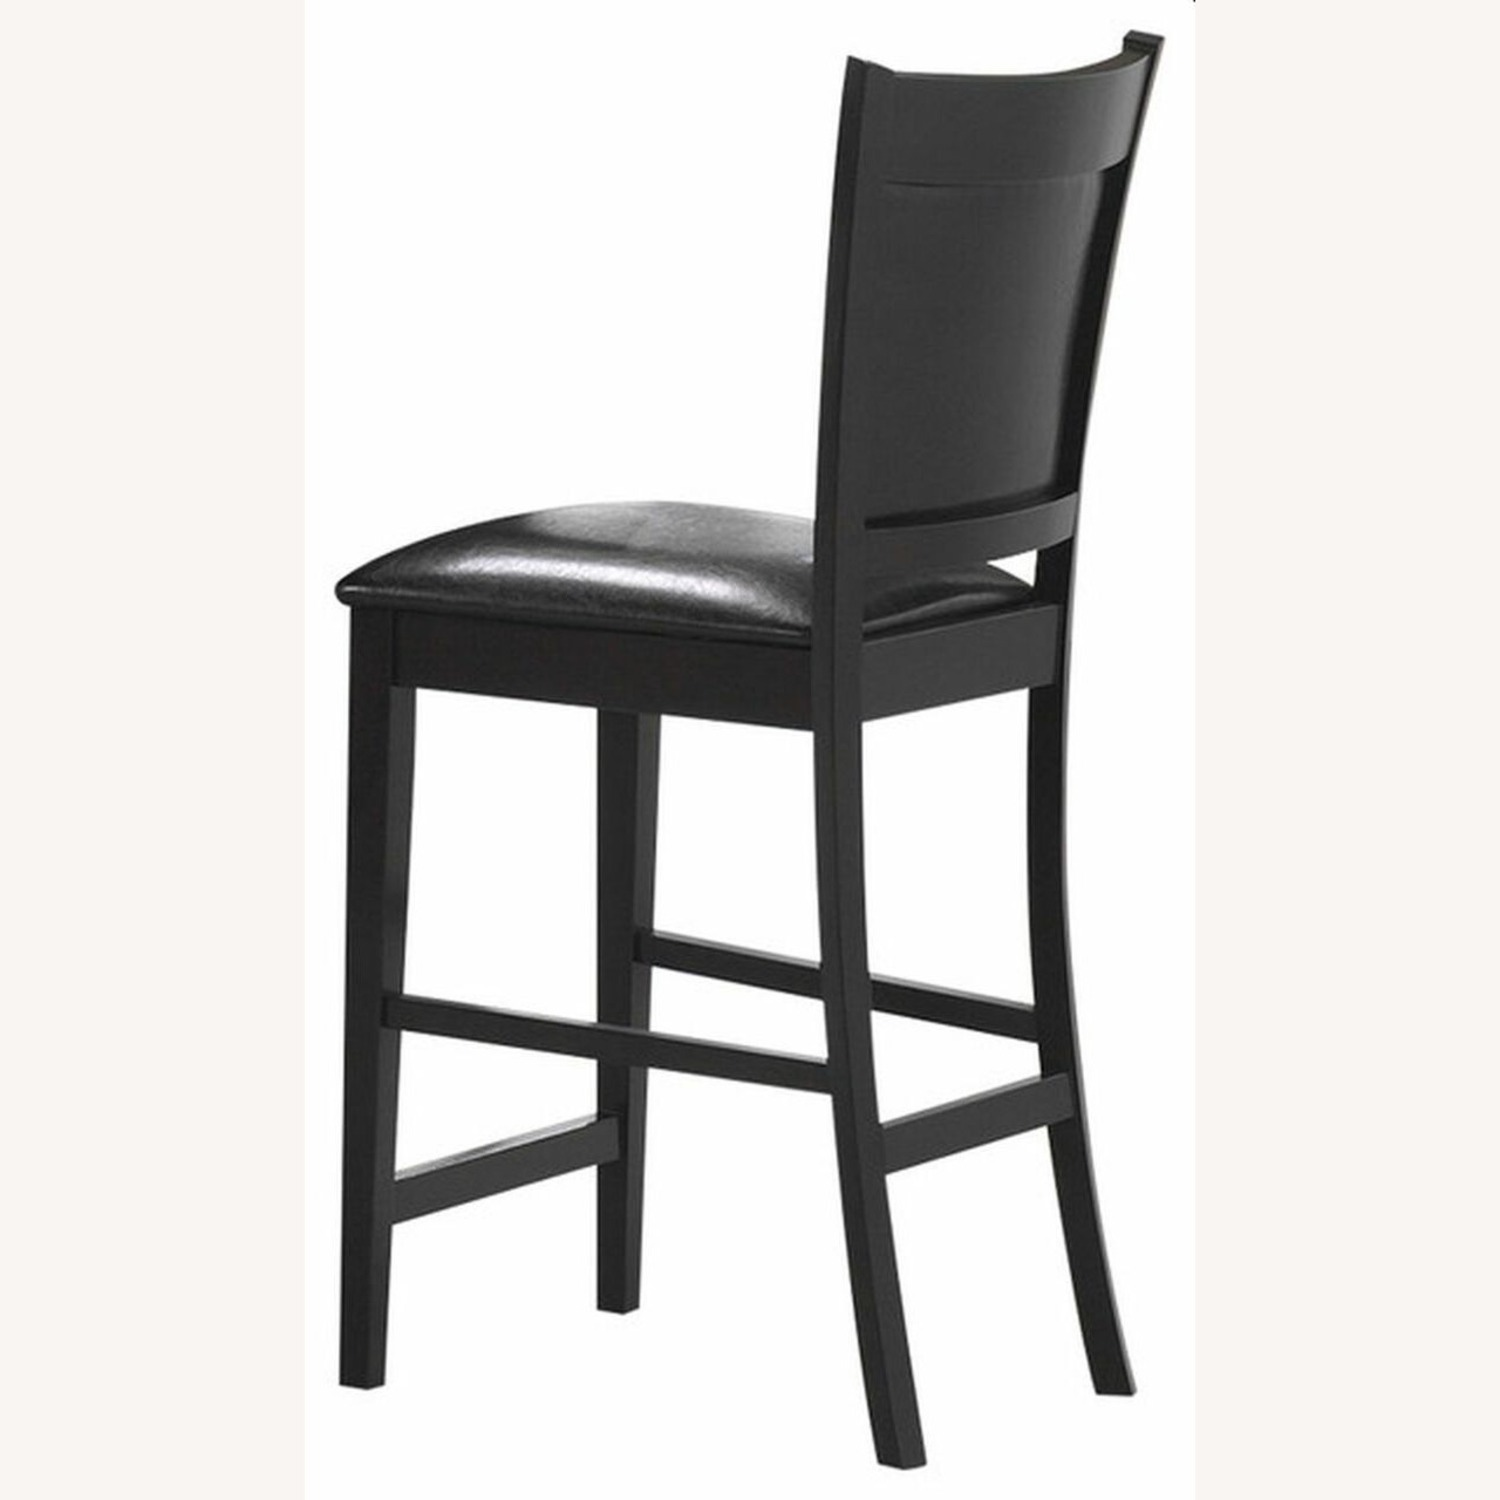 Counter Height Chair In Espresso Finish - image-3